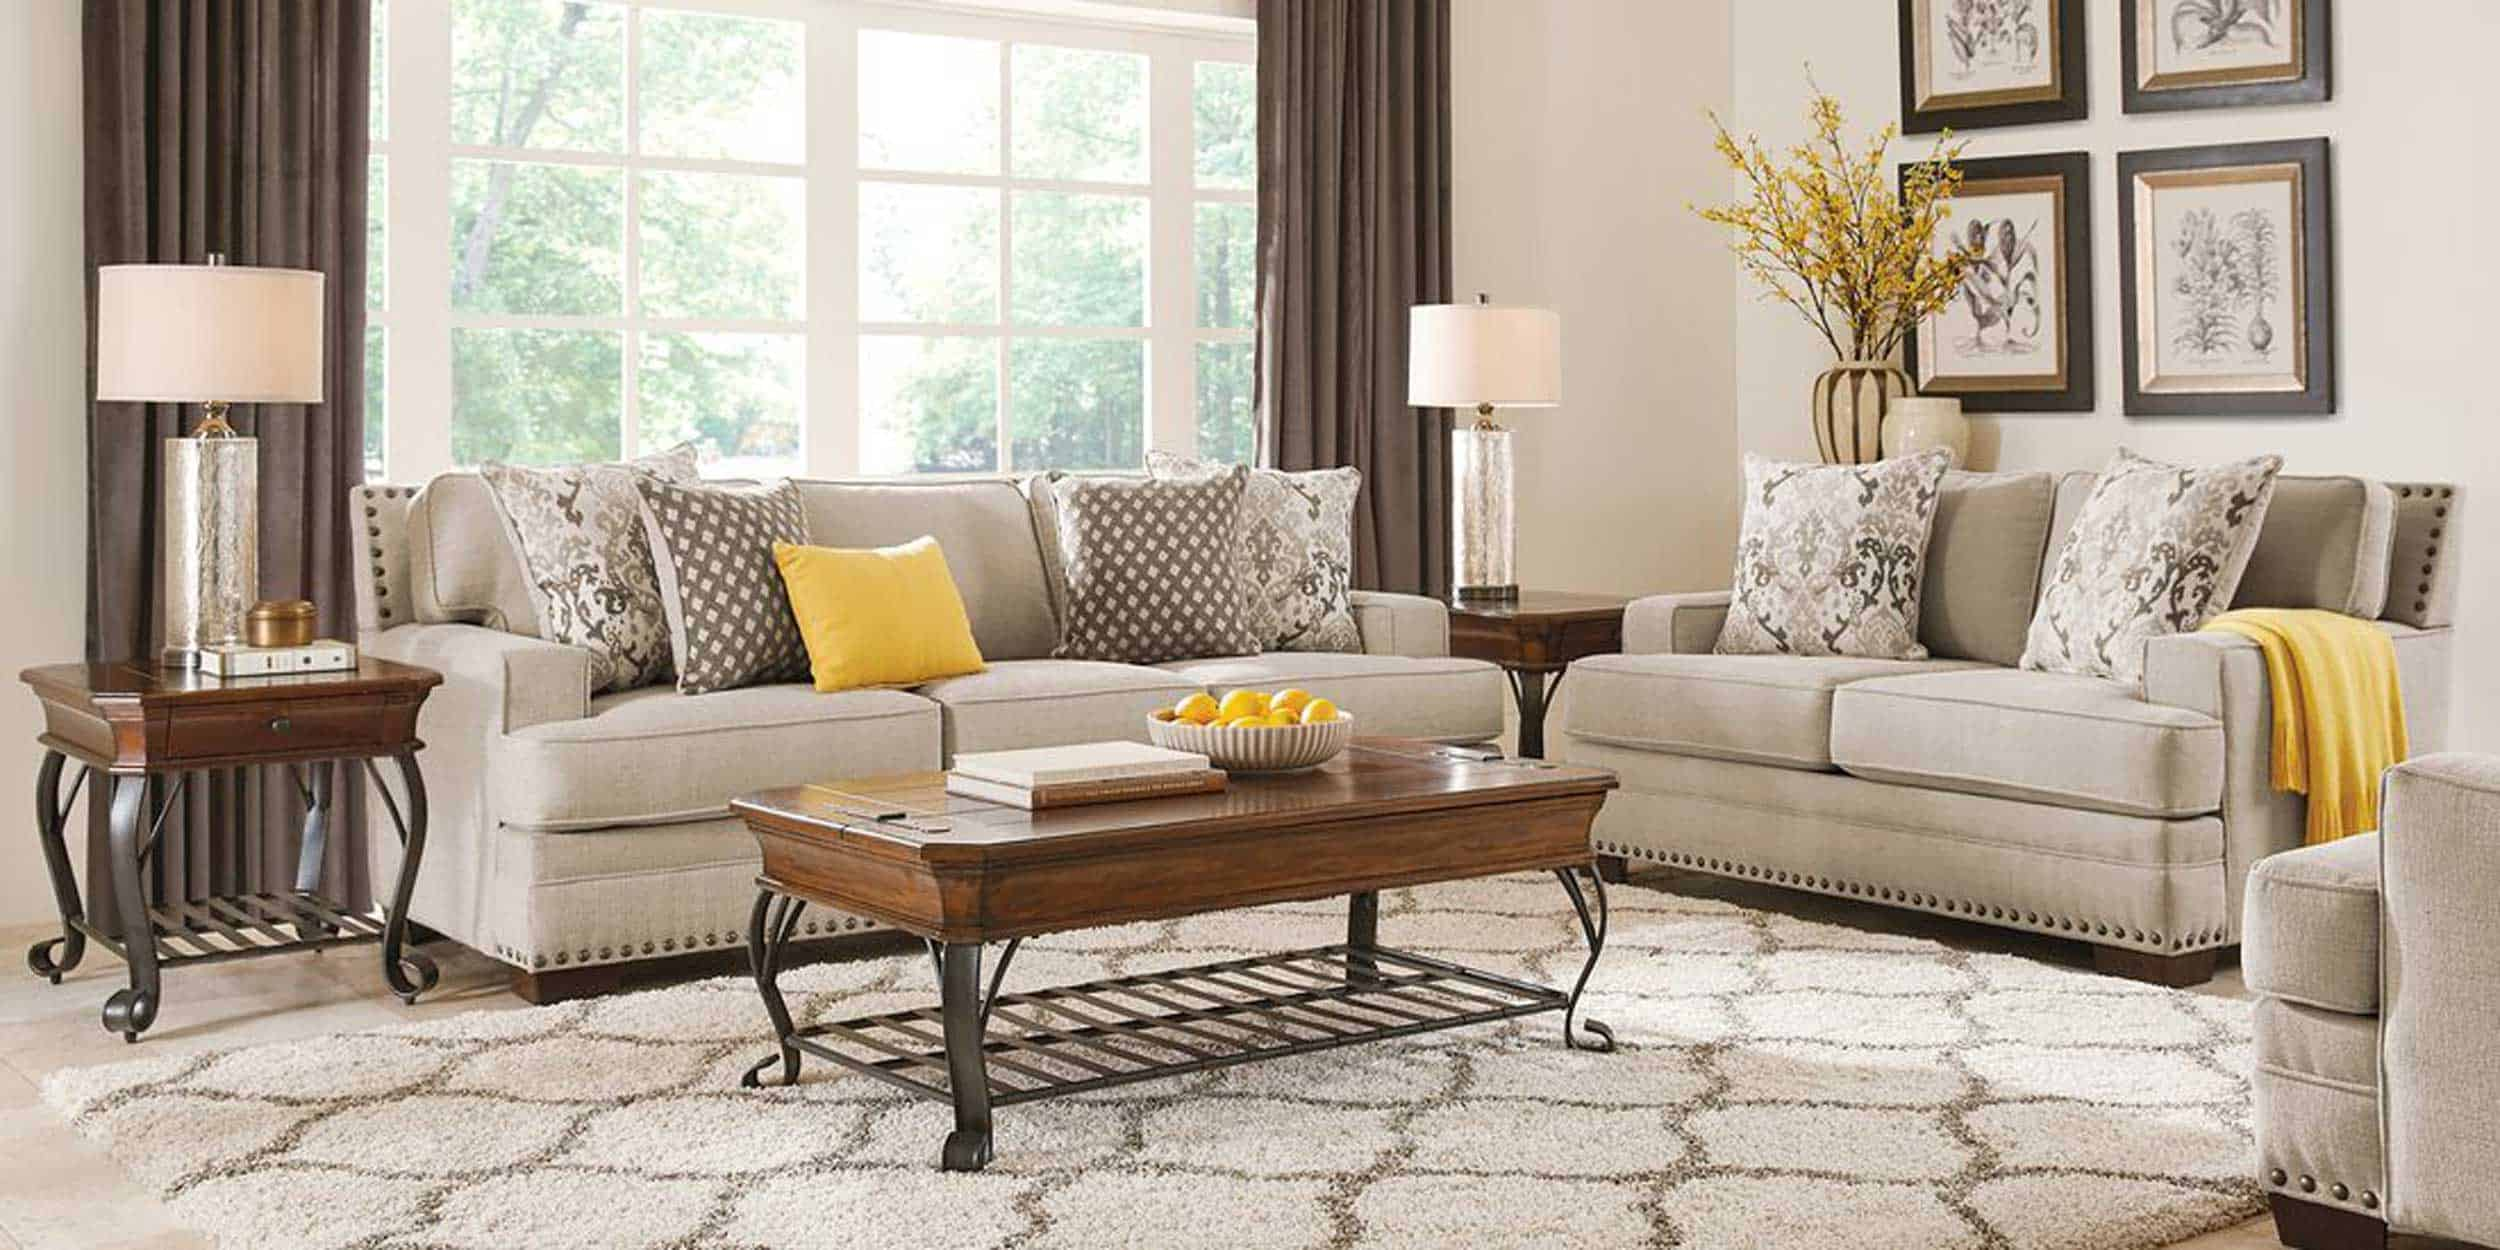 Belhaven Beige 2 Pc Living Room 1101020p Image Room